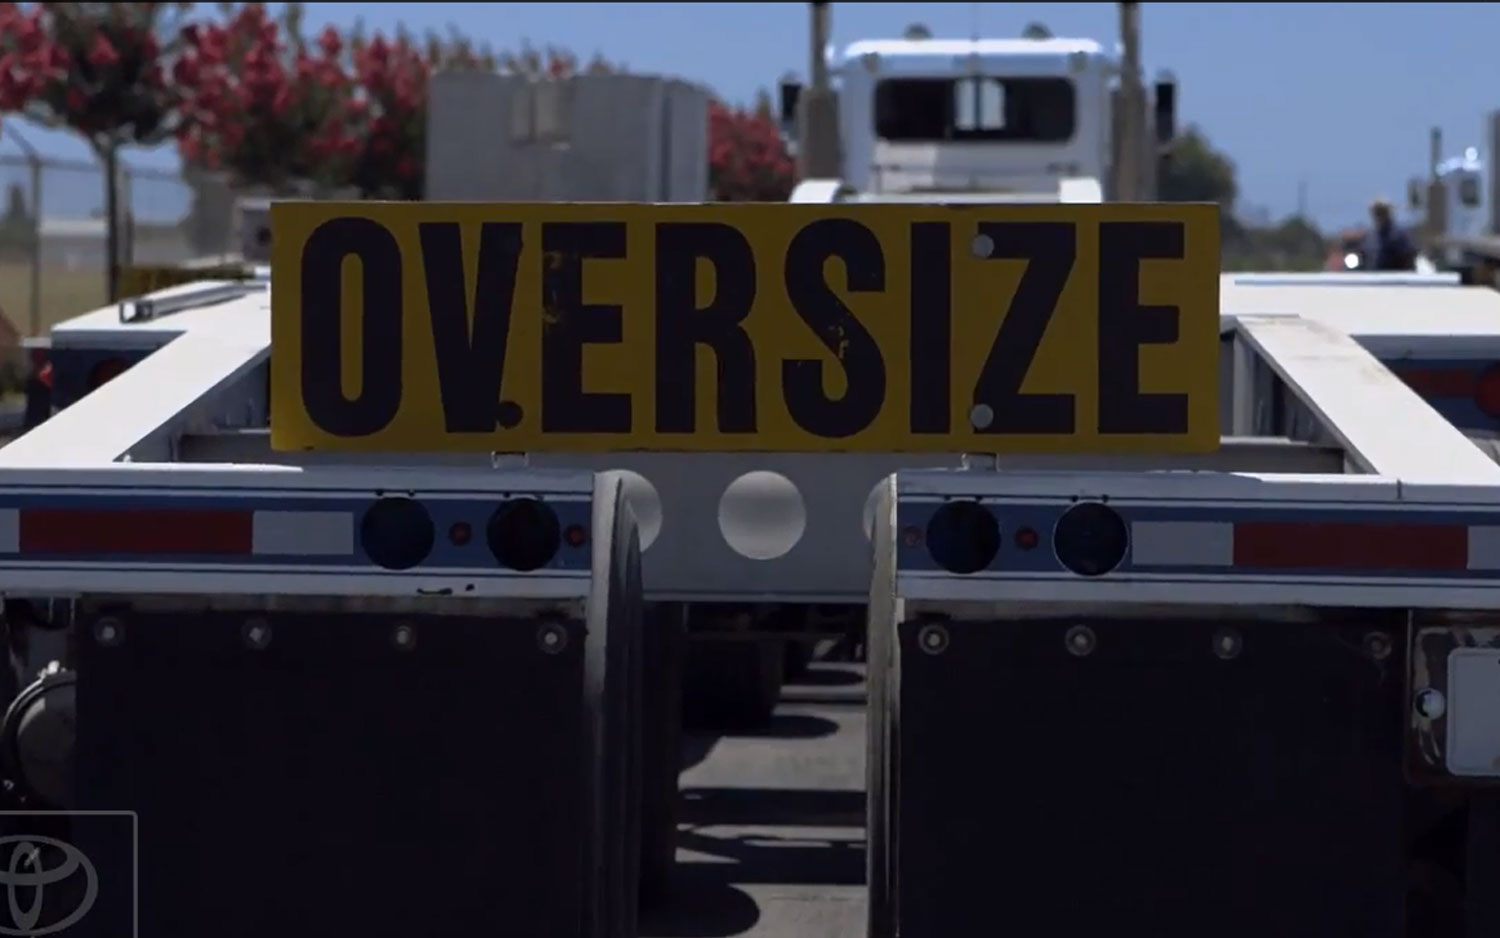 Toyota Tundra Endeavour Oversize Sign1